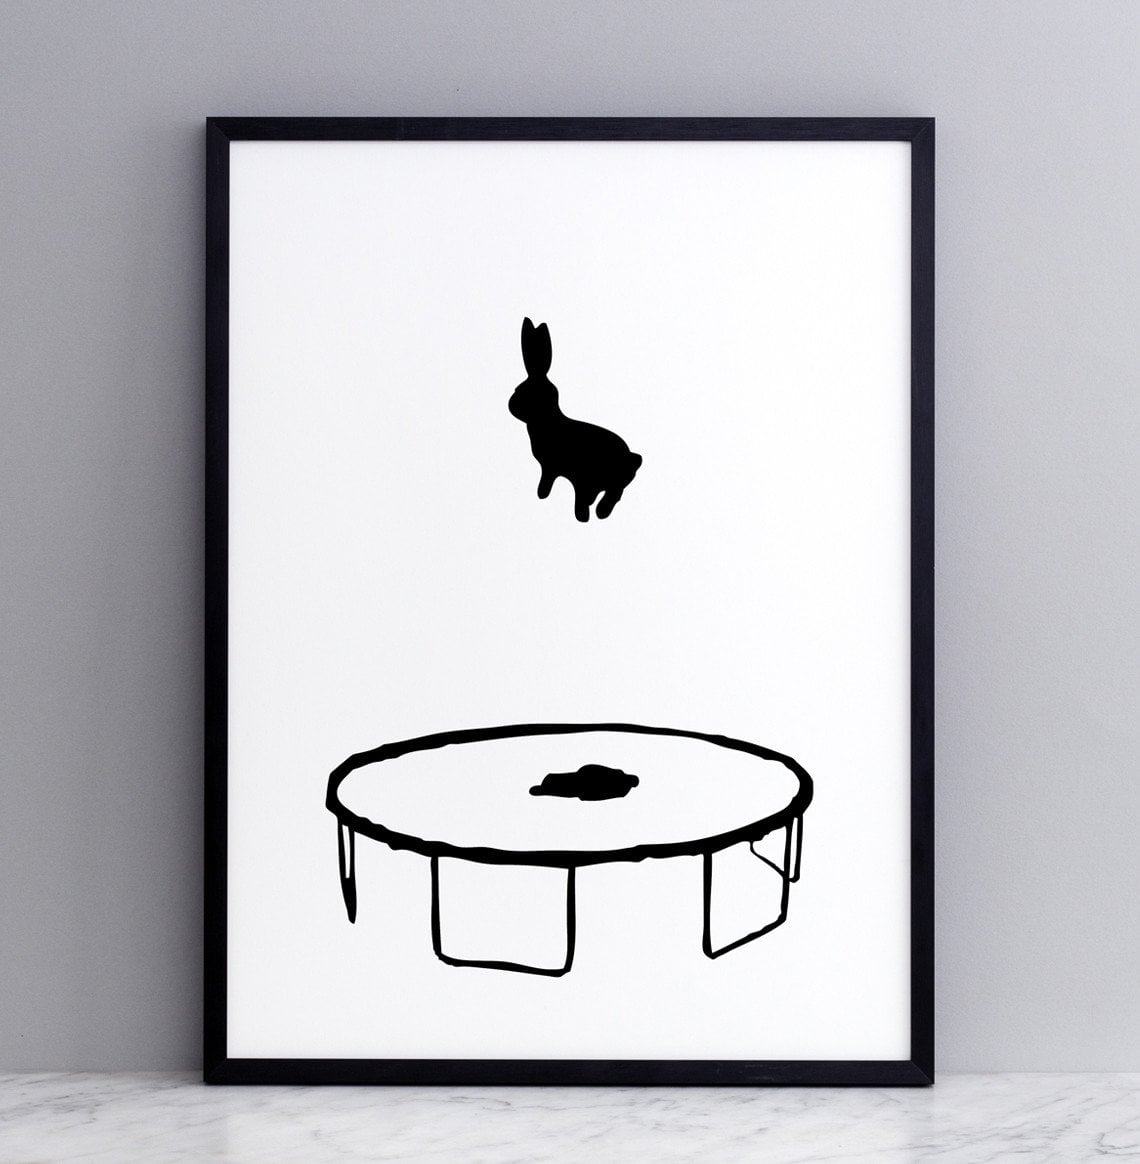 Bouncing Rabbit Print with Print